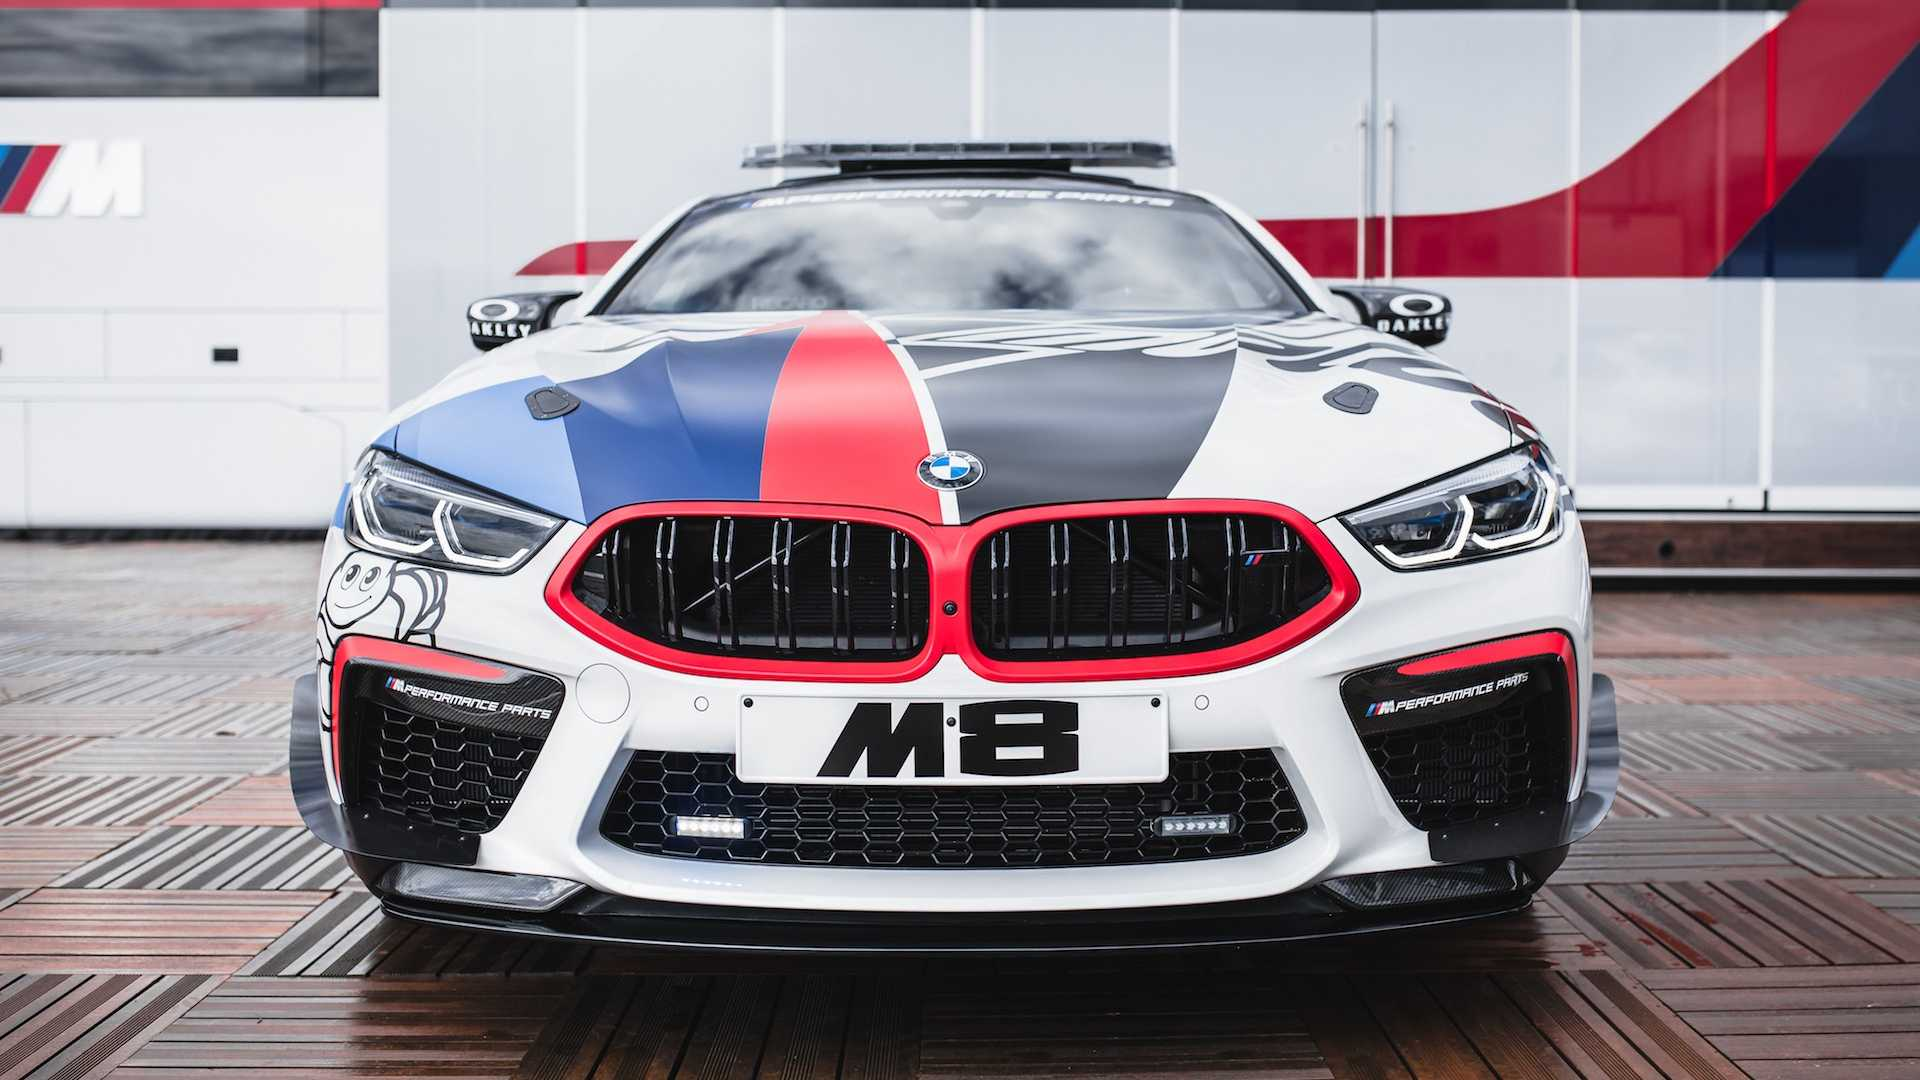 bmw-m8-motogp-safety-car-8.jpg